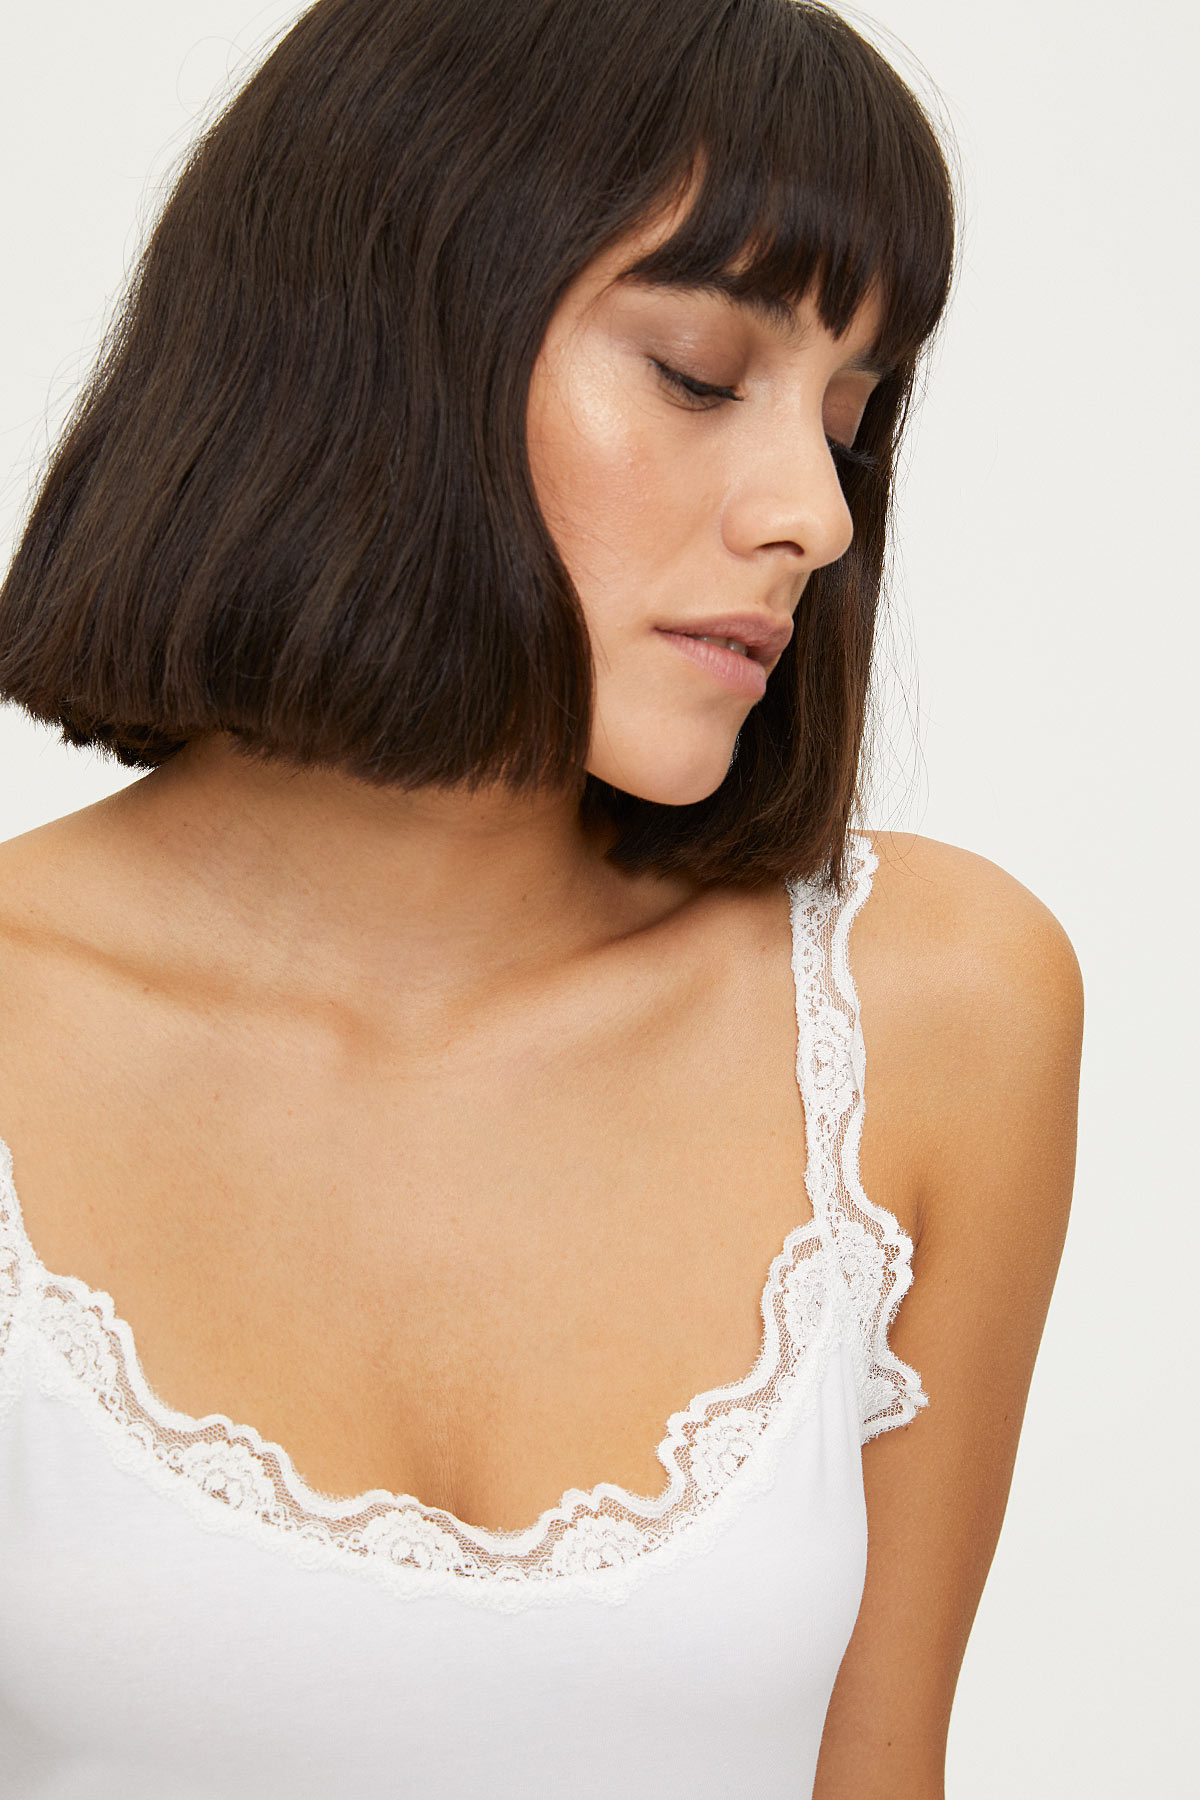 Lycra Strappy Ladies Lacy Undershirt - Thumbnail